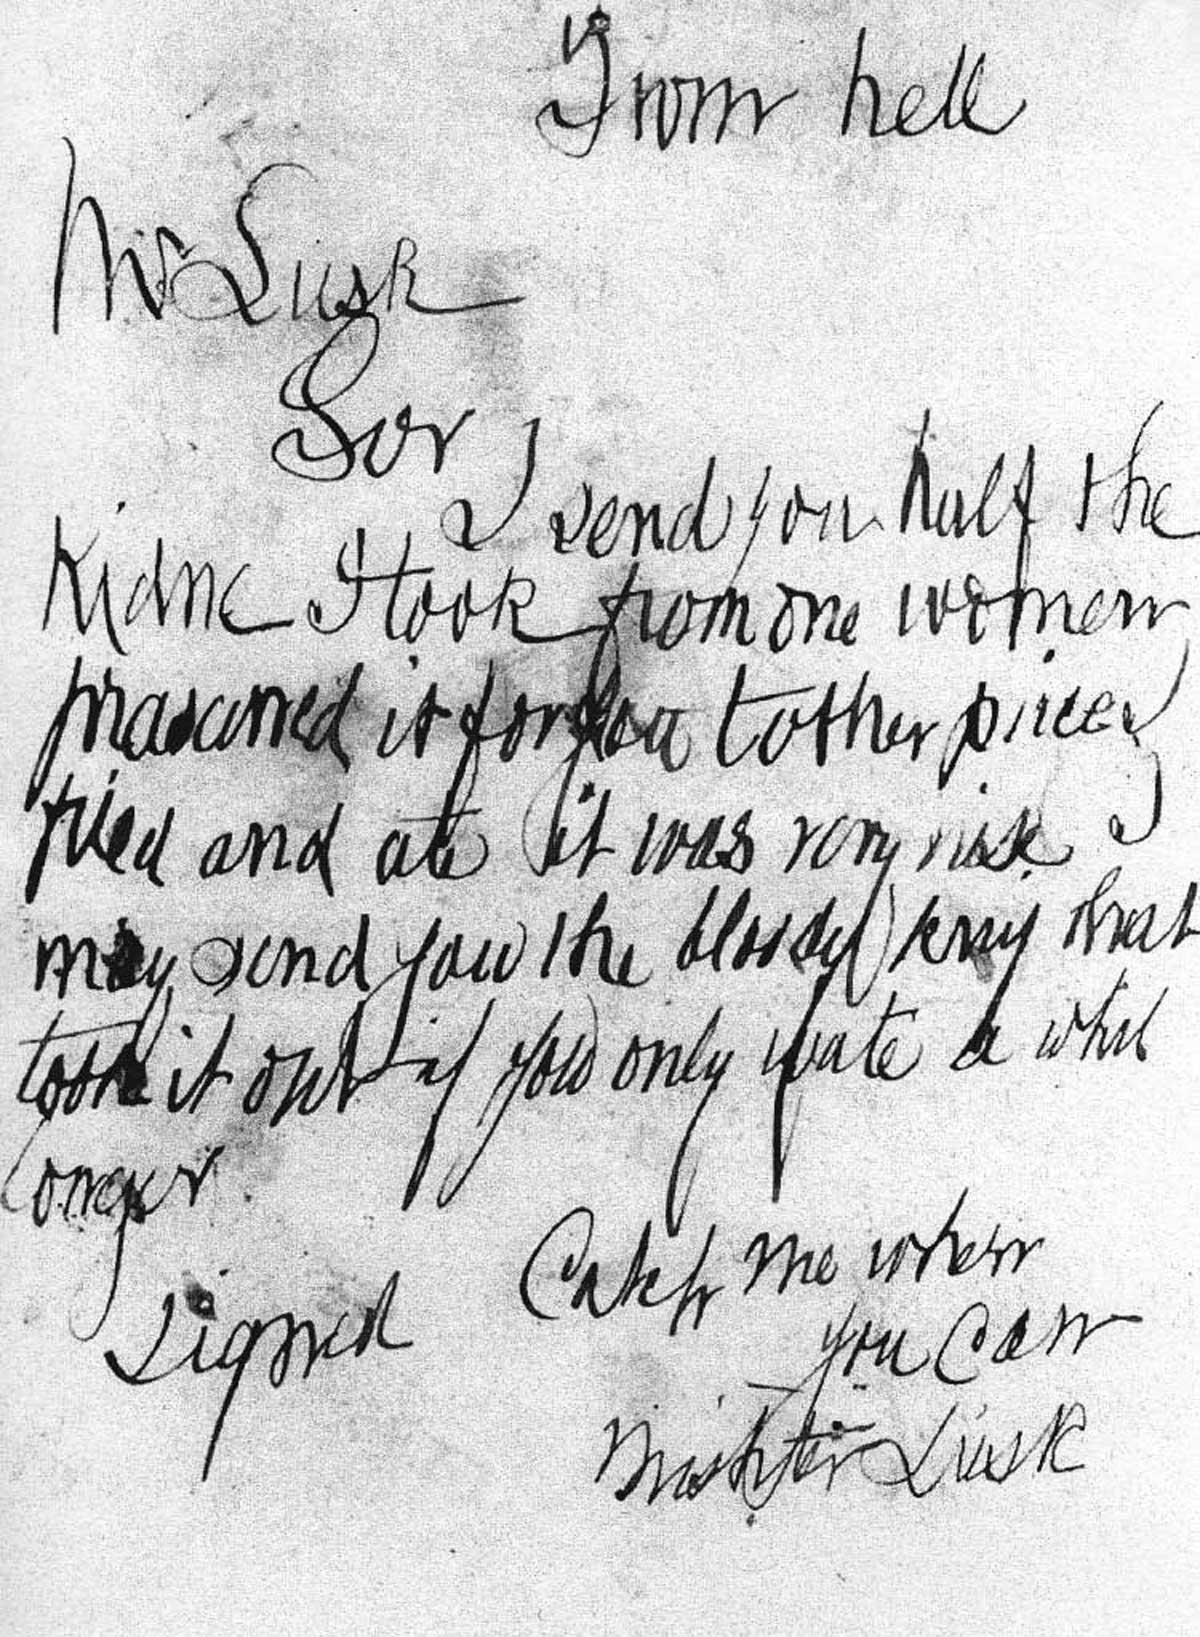 October 15, 1888: Whitechapel Vigilance Committee Receives Letter From Hell